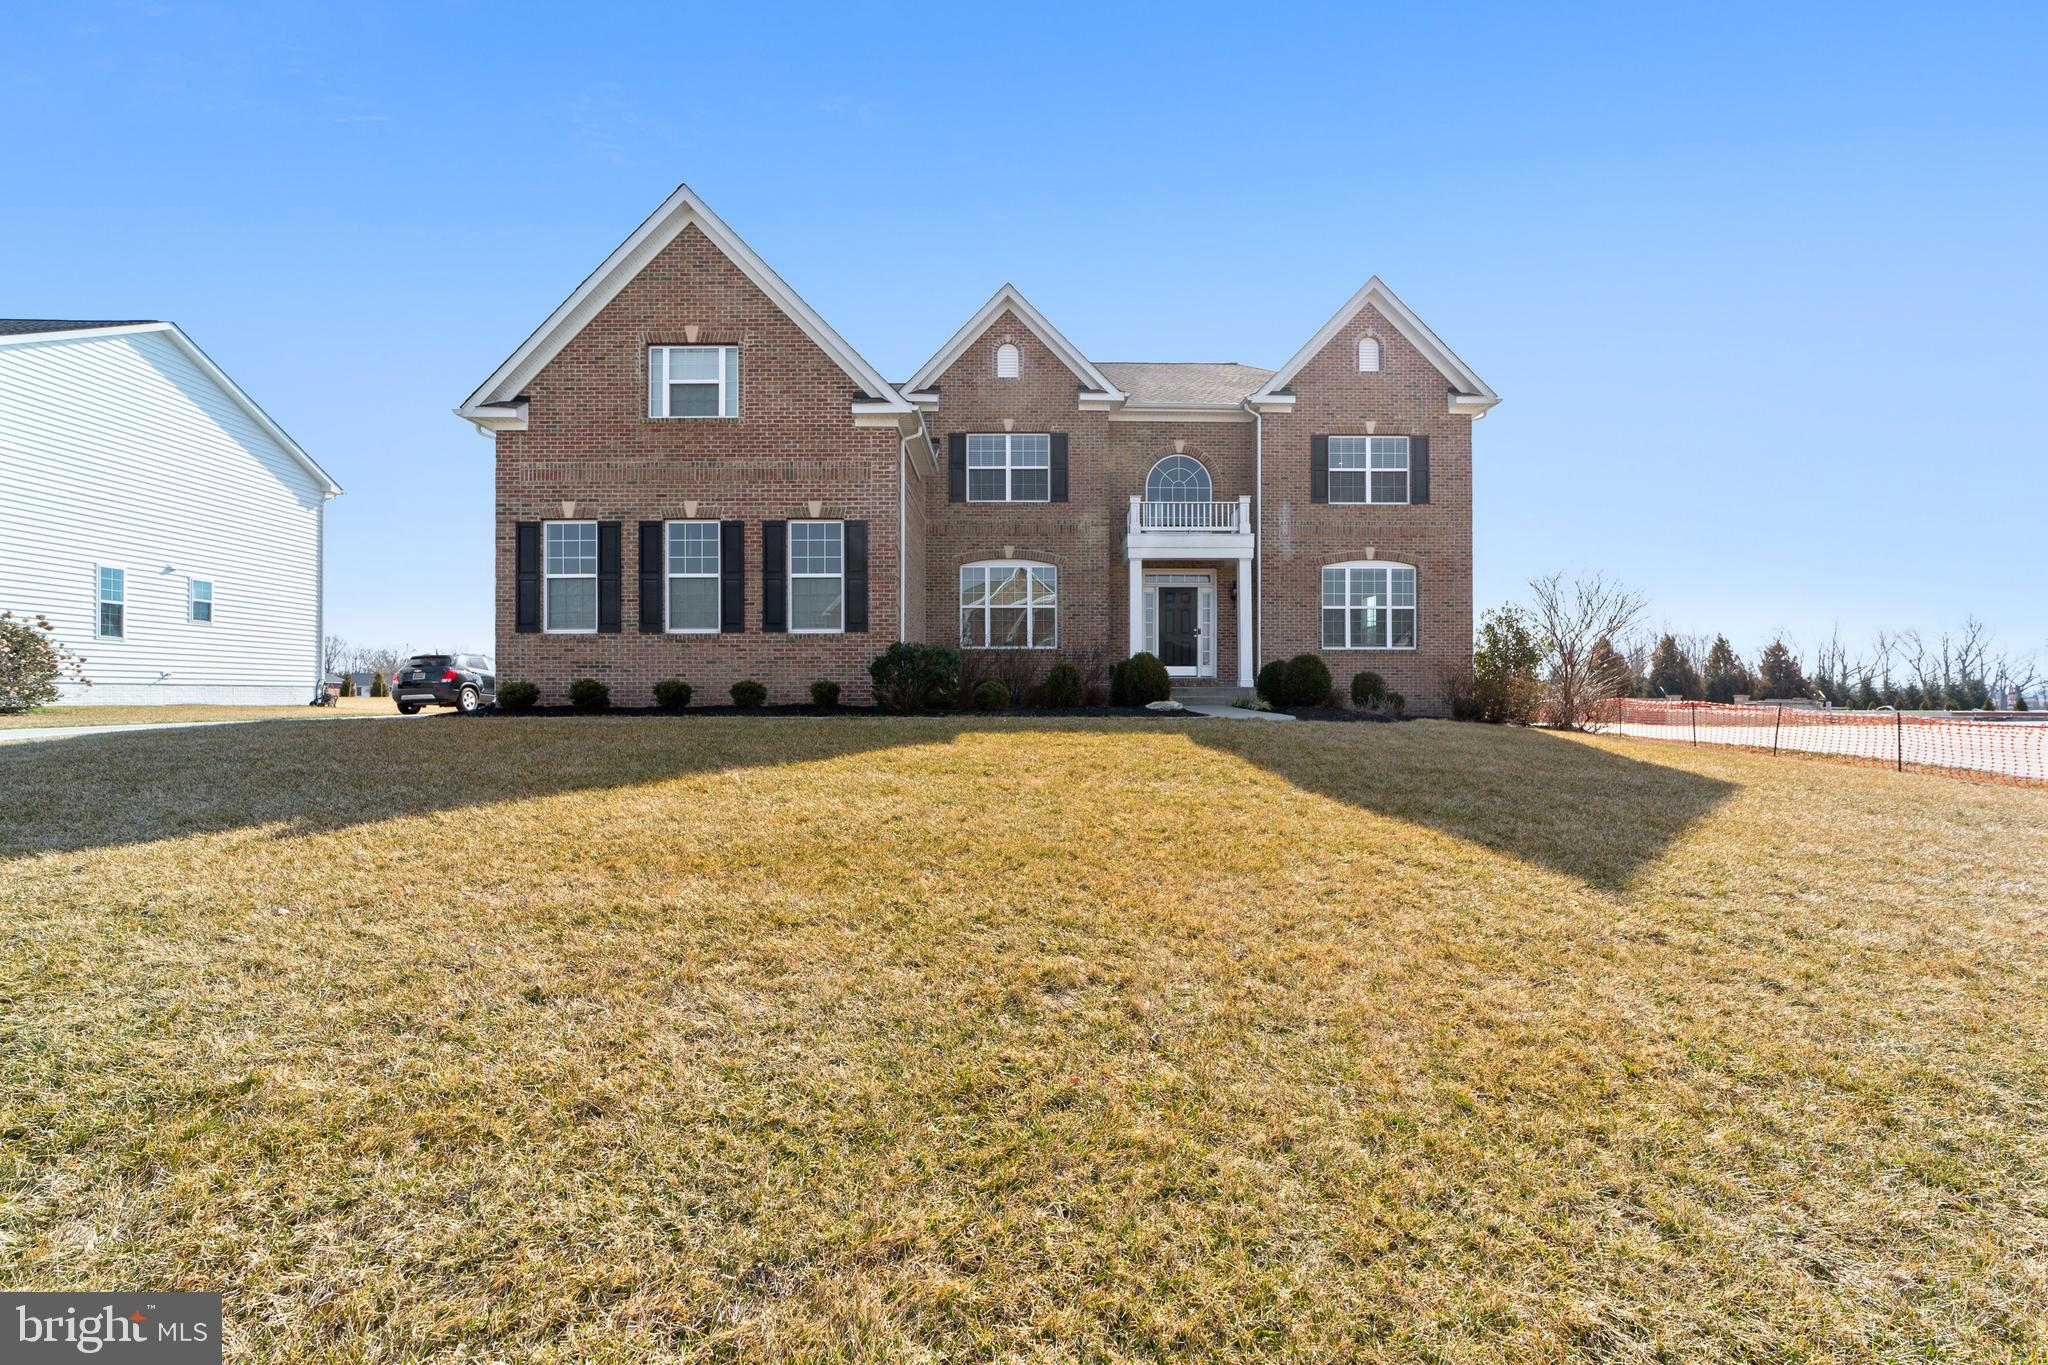 Showings begin Saturday 3/20/21 Don't miss your opportunity to own this home in the highly sought after Estates at Cedar Lane. Upon entering the grand two-story foyer, you will find a formal living room on the right and a beautiful formal dining room to the left. Pristine hardwood floors lead you into the two-story family room with a floor-to-ceiling stone fireplace and coffered ceilings. At the heart of this fine home is the large eat-in kitchen with an adjoining breakfast room. The oversized island and breakfast bar are great for socializing. The kitchen also boasts a walk-in pantry, double wall ovens, gas cooking and stainless steel appliances. The main level also offers a large, private office and a half-bath. Up the impressive staircase is a main bedroom retreat with a huge walk-in closet and private bath with soaking tub and dual vanities. The second bedroom also boasts a private bath while the third and fourth bedroom share a Jack and Jill-style bath. A laundry room with a sink and storage closet complete this level. The finished walk-out basement adds approximately 2,000+ square feet of extra living space with a theater room, large family/game room with rough in for a wet bar, a fifth bedroom and fourth full bath. See this one today!